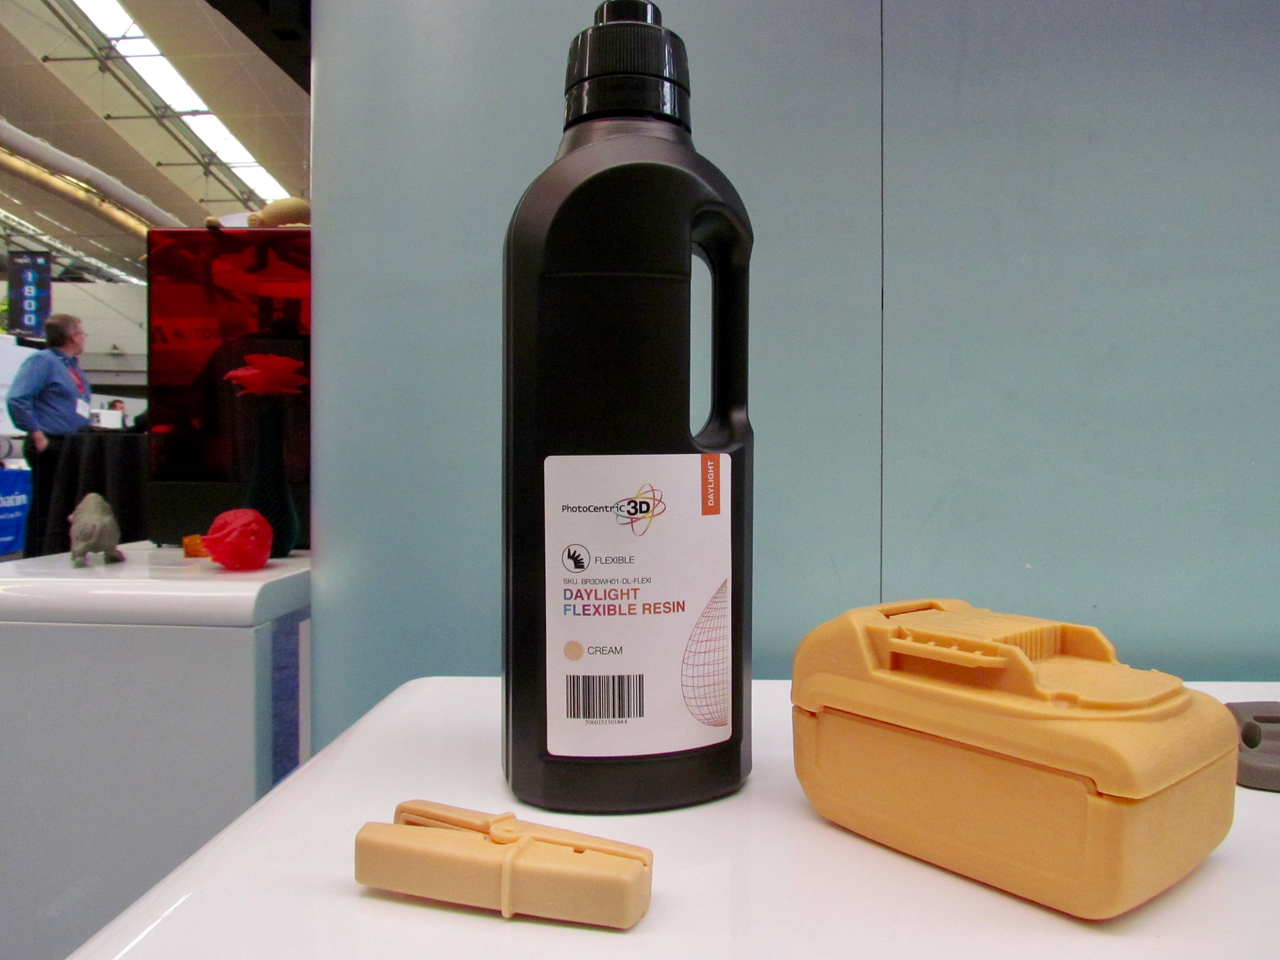 One of Photocentric's 3D printer photopolymer resins